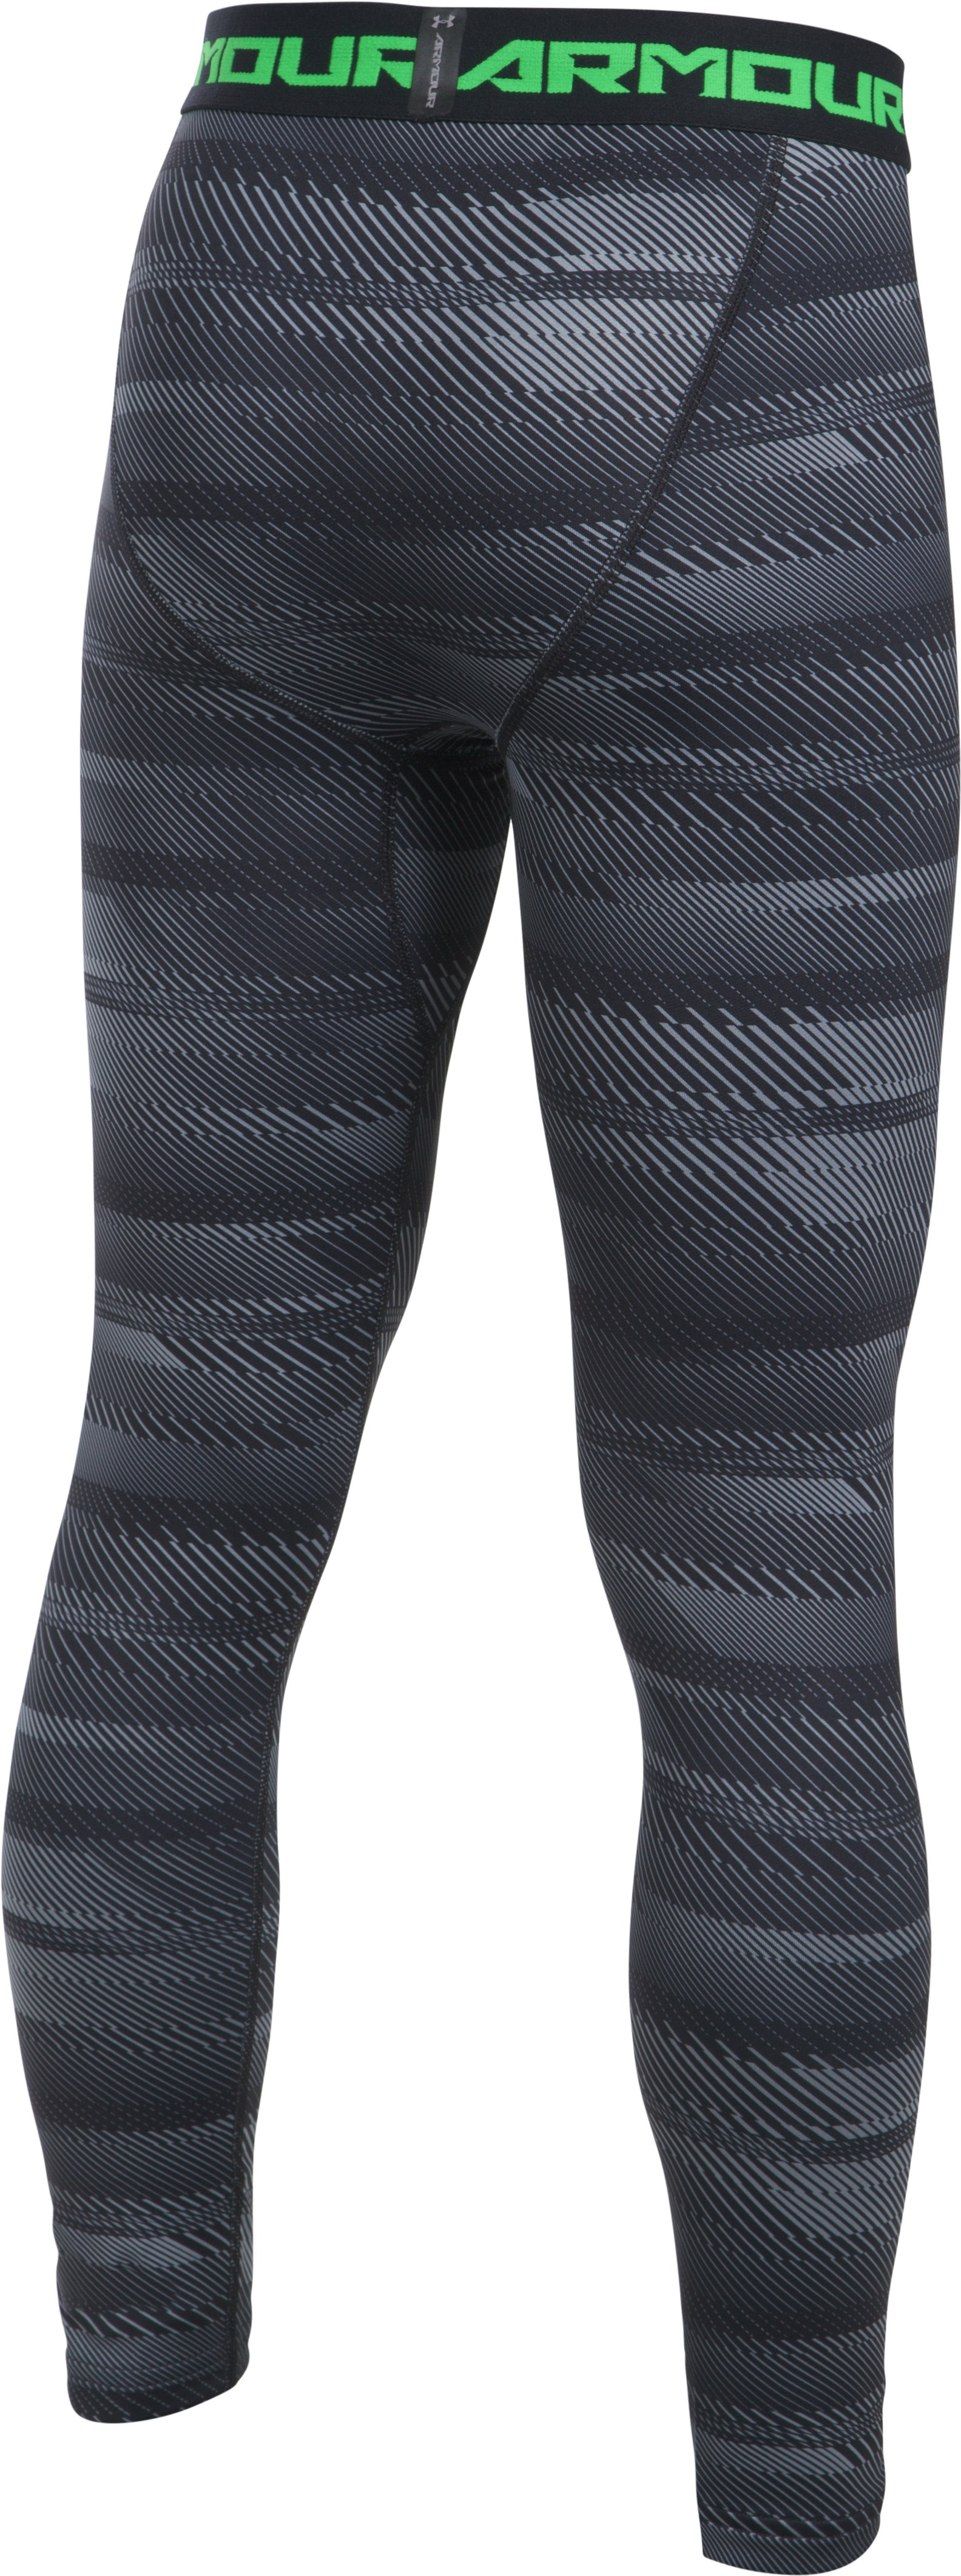 Boys' ColdGear® Armour Printed Leggings, Black , undefined